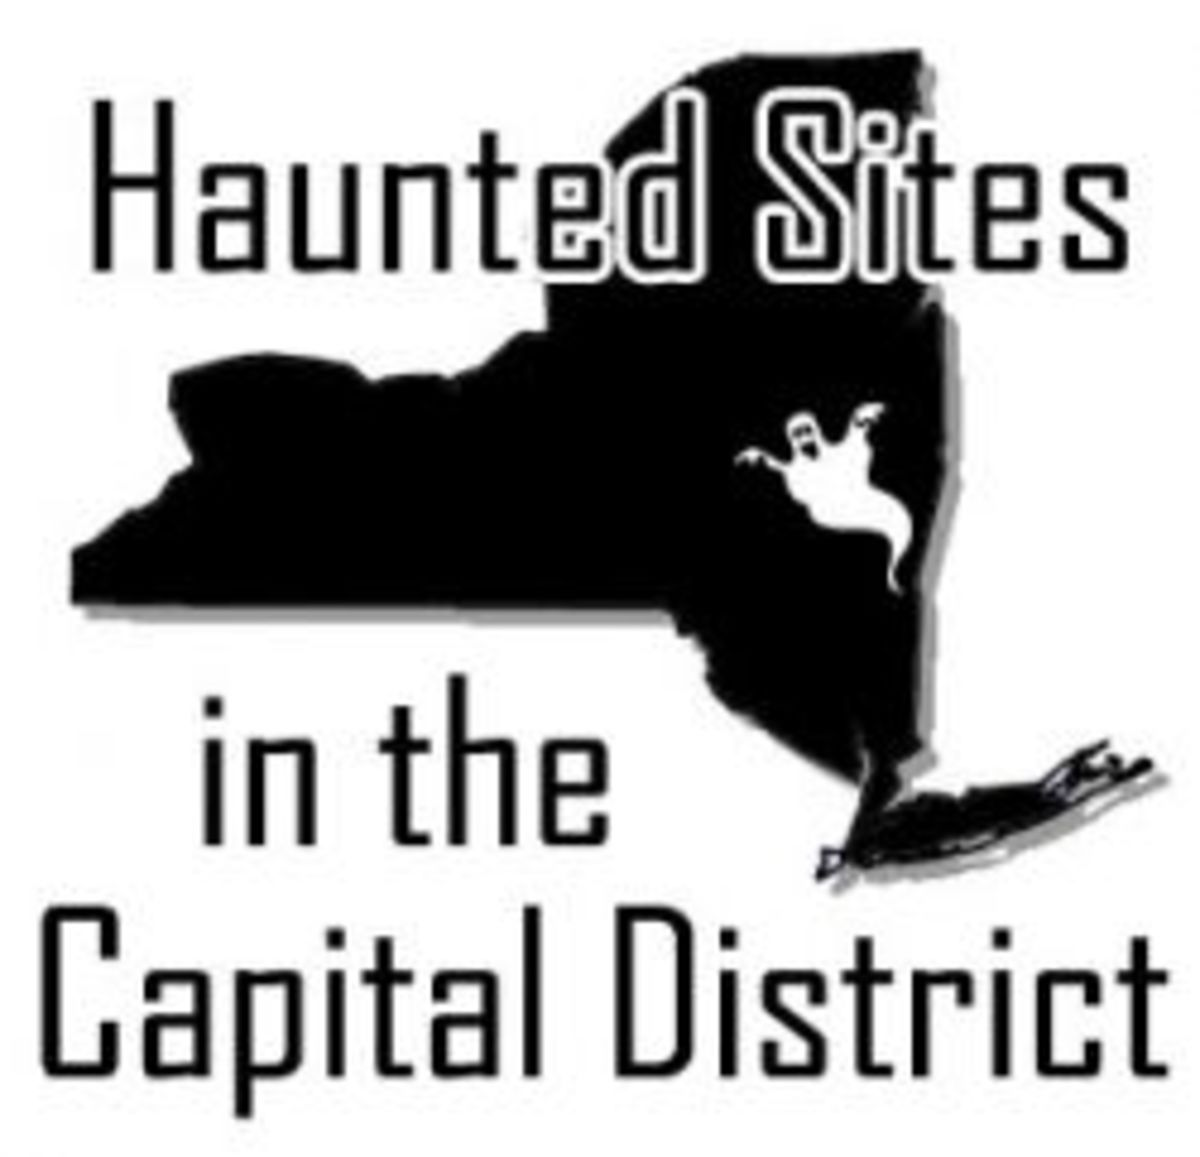 Haunted Sites in the Capital District